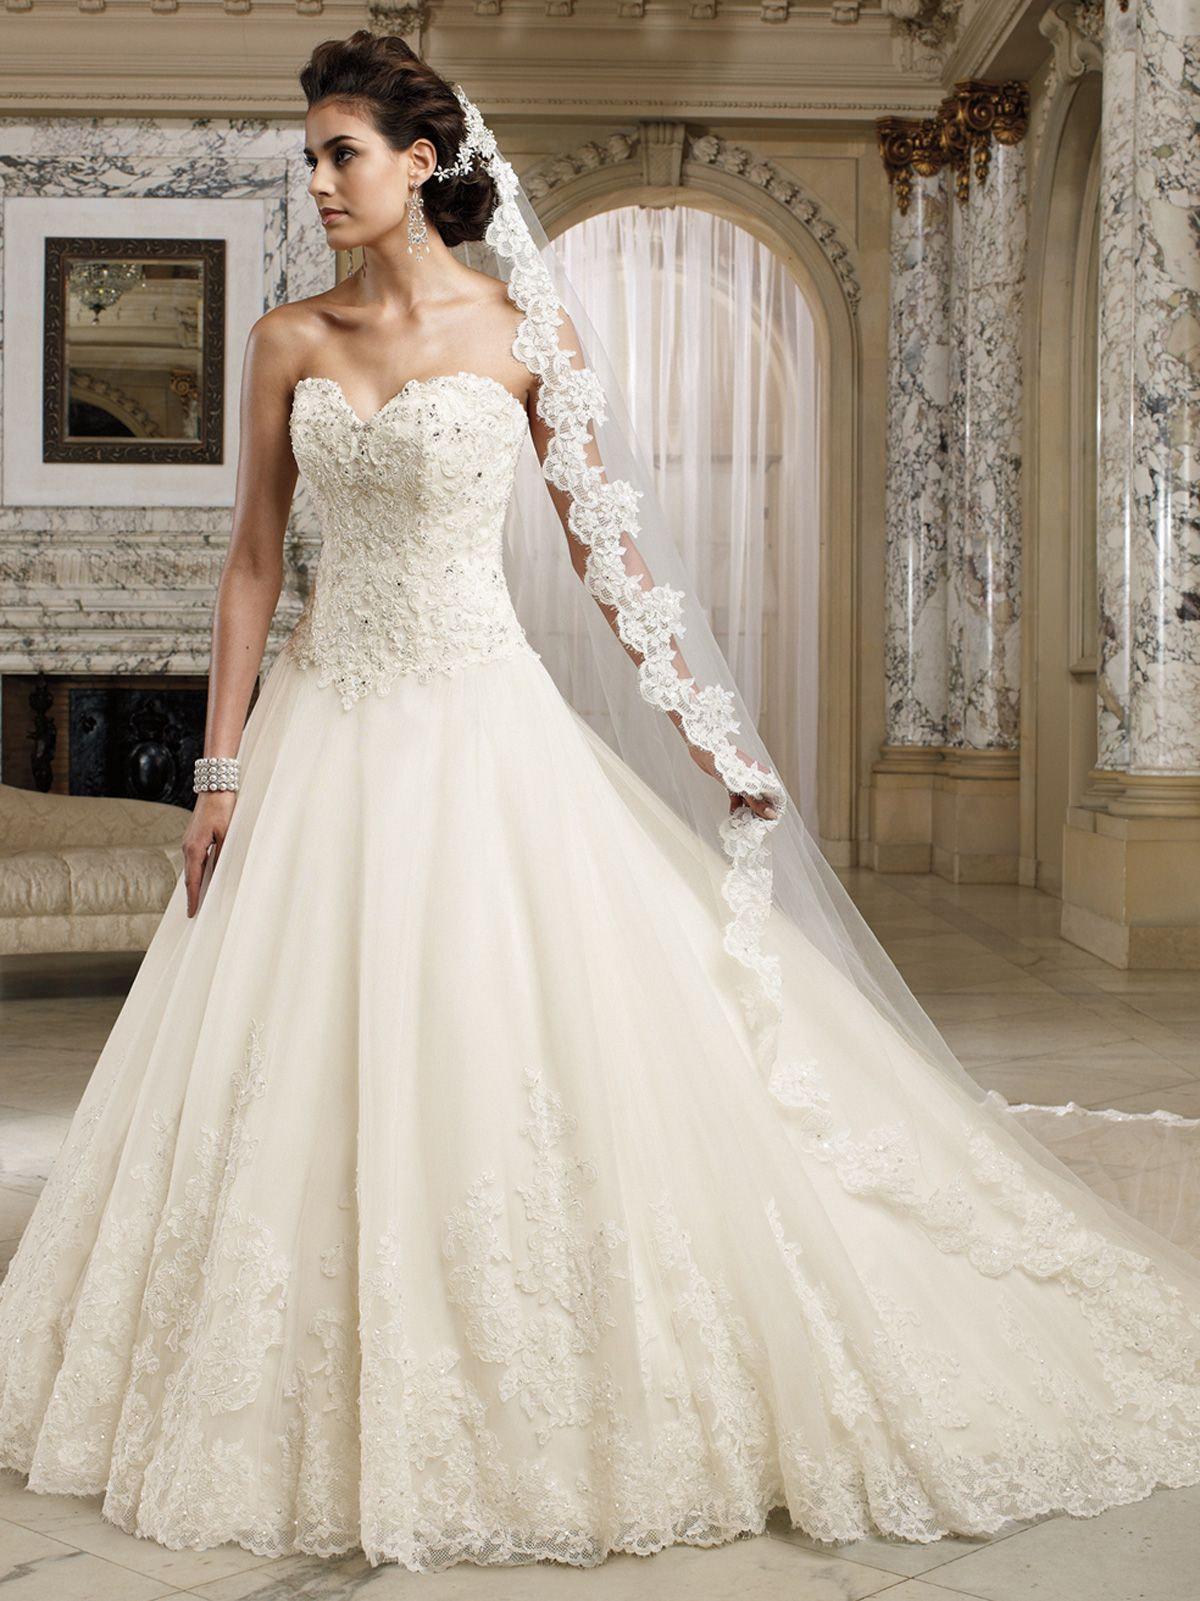 Sweetheart lace bodice nevaeh bridal gown david tutera mon cheri sweetheart lace bodice nevaeh bridal gown david tutera mon cheri 212245dimitradesigns junglespirit Choice Image